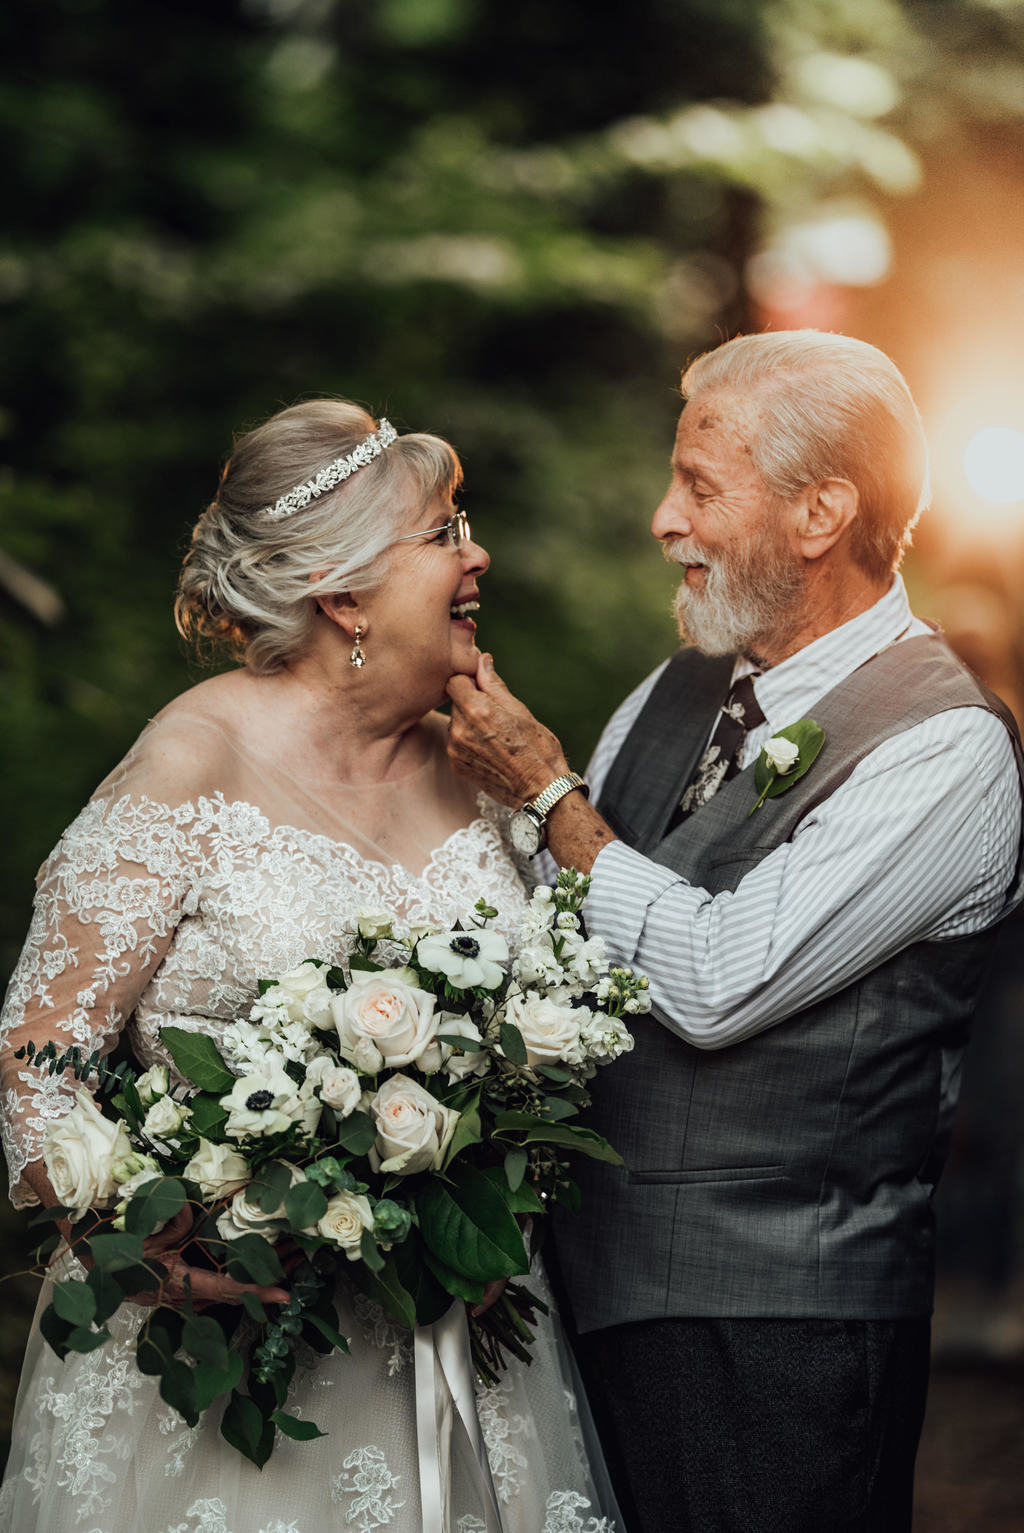 60 years married